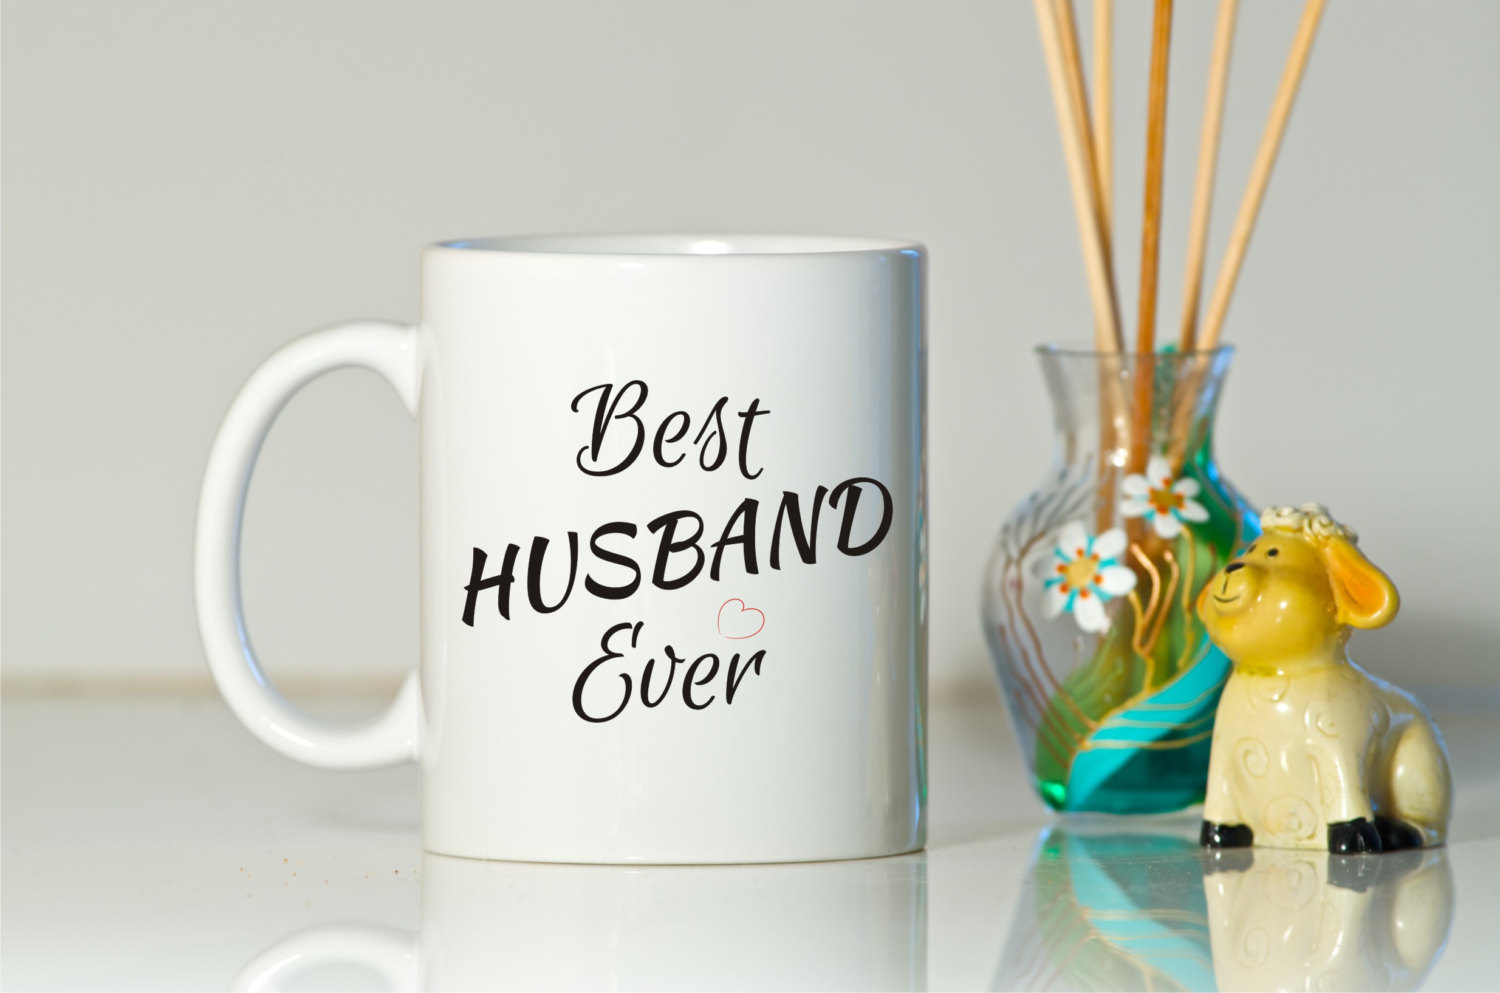 Online Gift For Husband On Wedding Night : First Birthday Gift for Husband/Wife After Wedding/Marriage ...